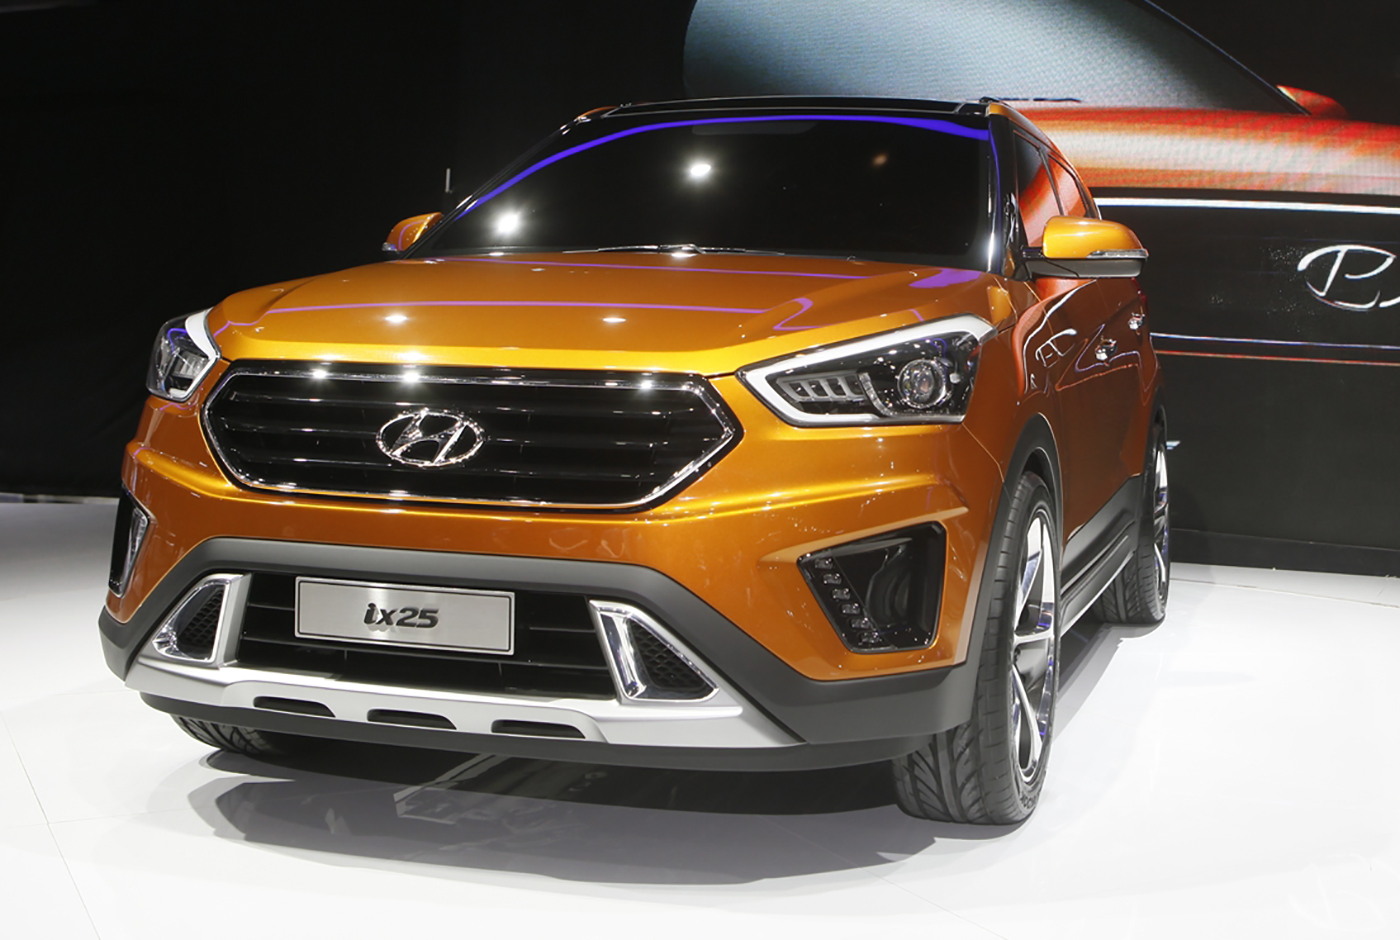 hyundai india to begin media activities for ix25 compact suv from june 2015 motoroids. Black Bedroom Furniture Sets. Home Design Ideas